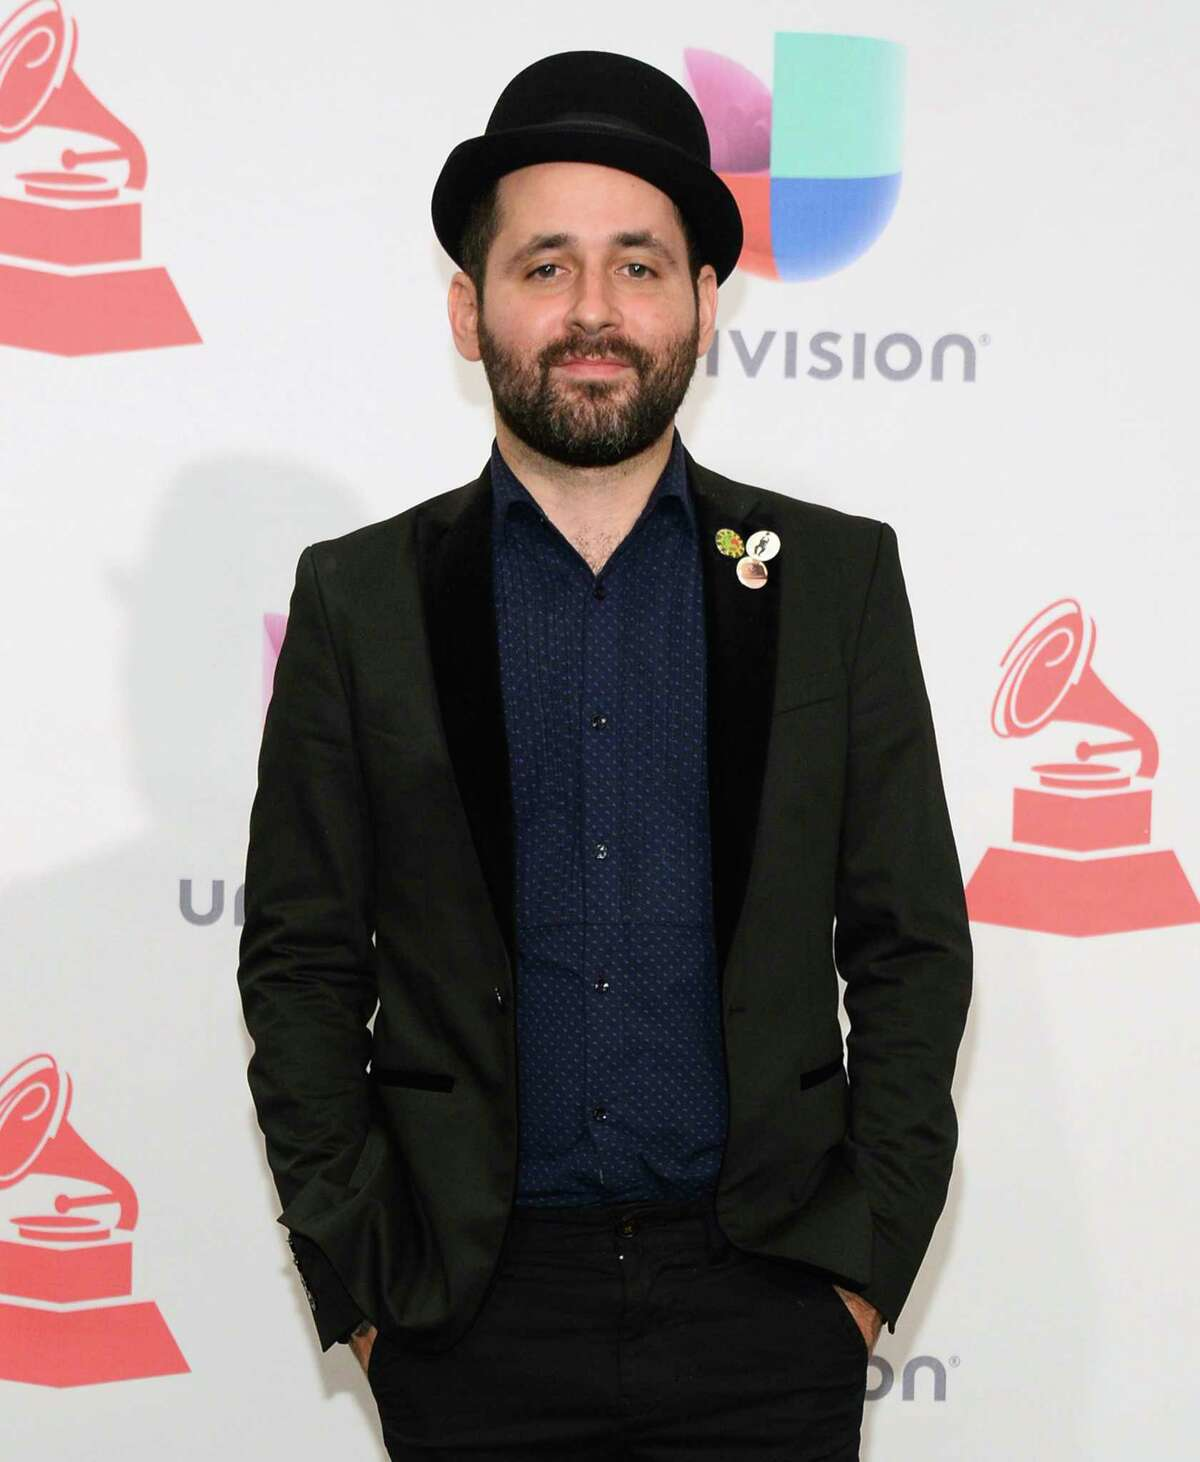 FILE - In this Nov. 19, 2015, file photo, Eduardo Cabra, of Calle 13, poses in the press room at the 16th annual Latin Grammy Awards in Las Vegas. Cabra killed off his